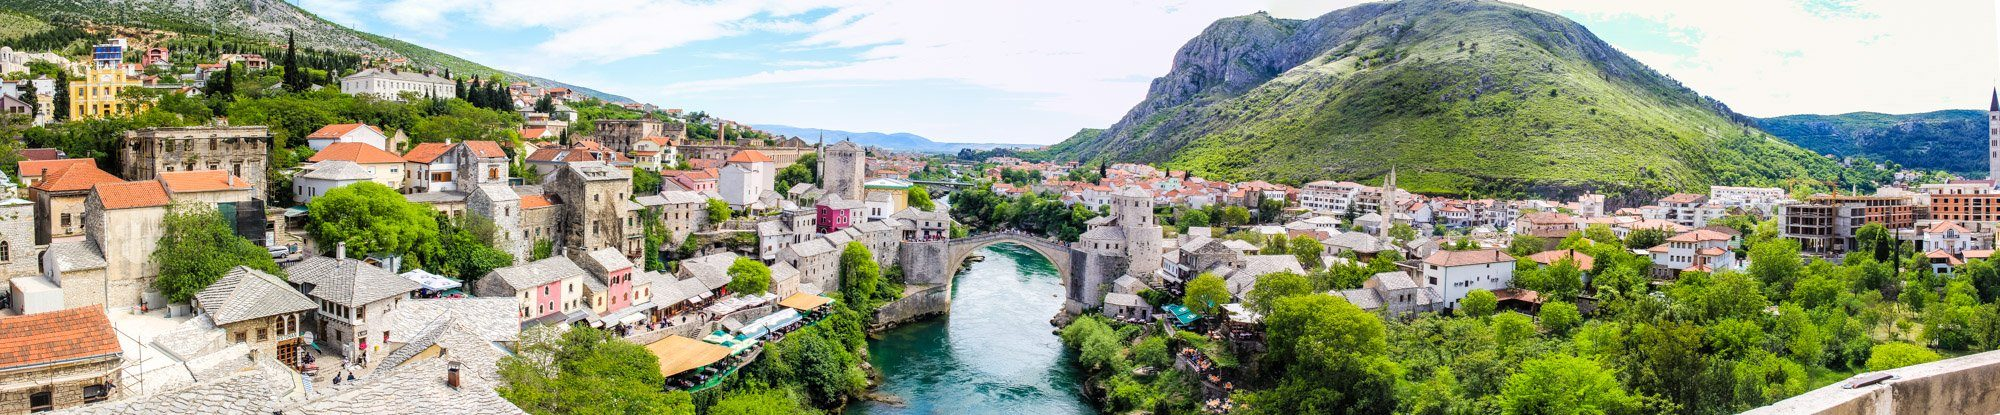 mostar-bosnia-photos-6